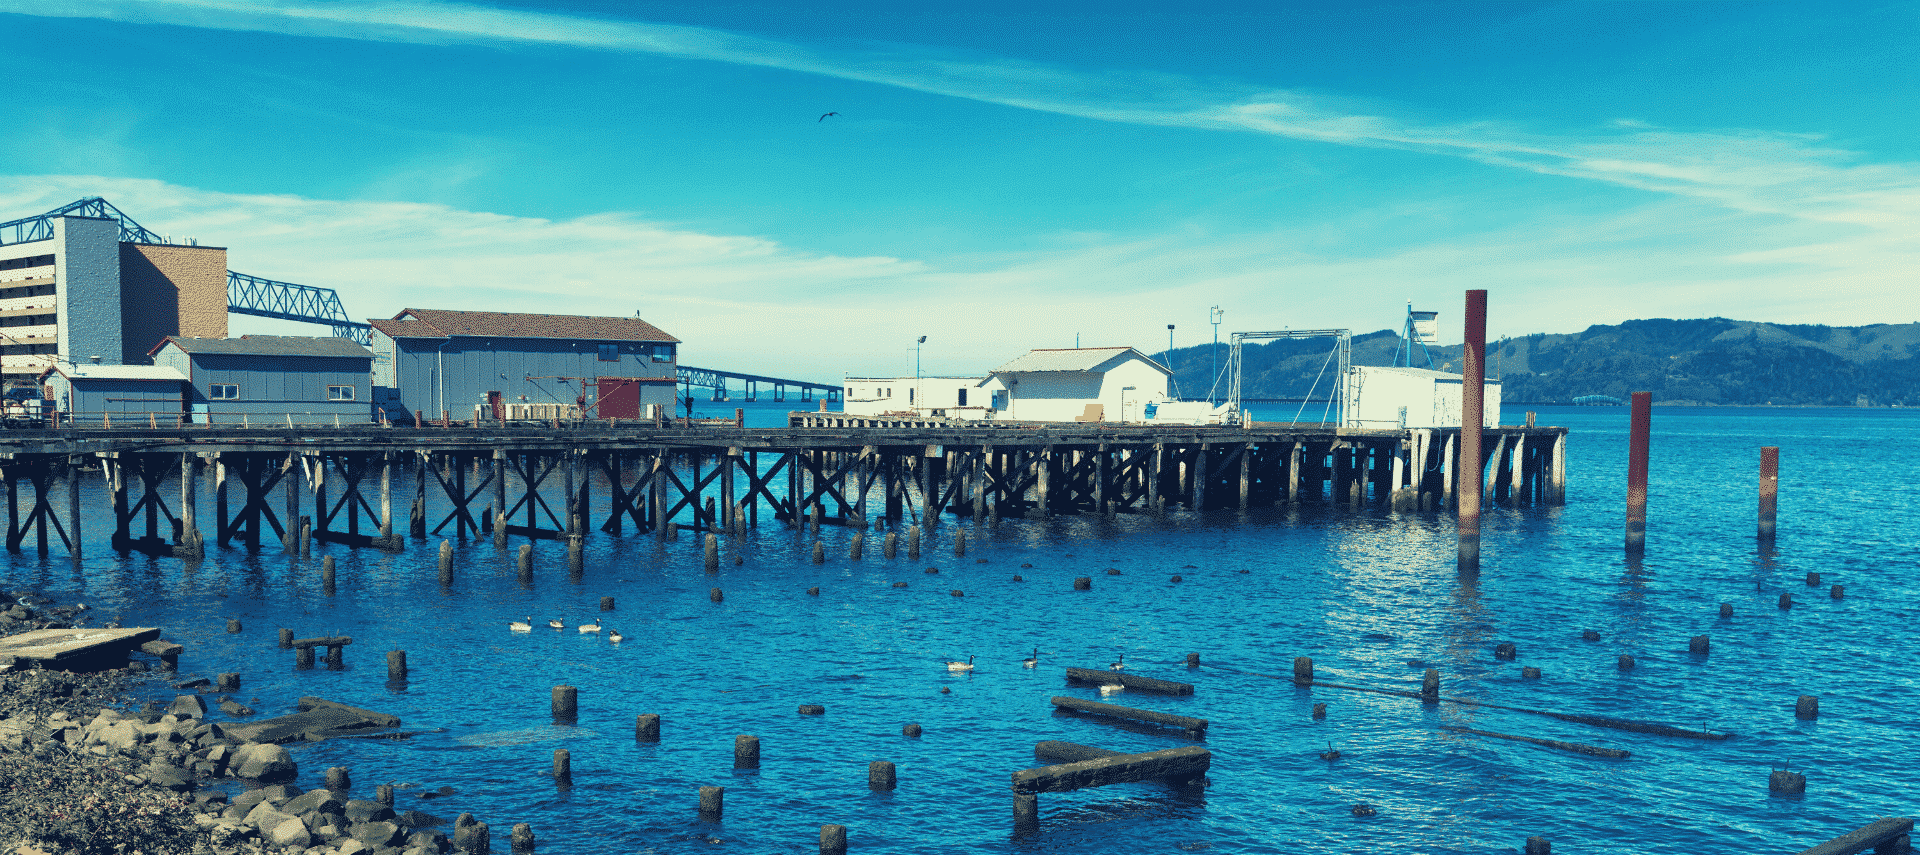 Cannery Row along Monterey Bay